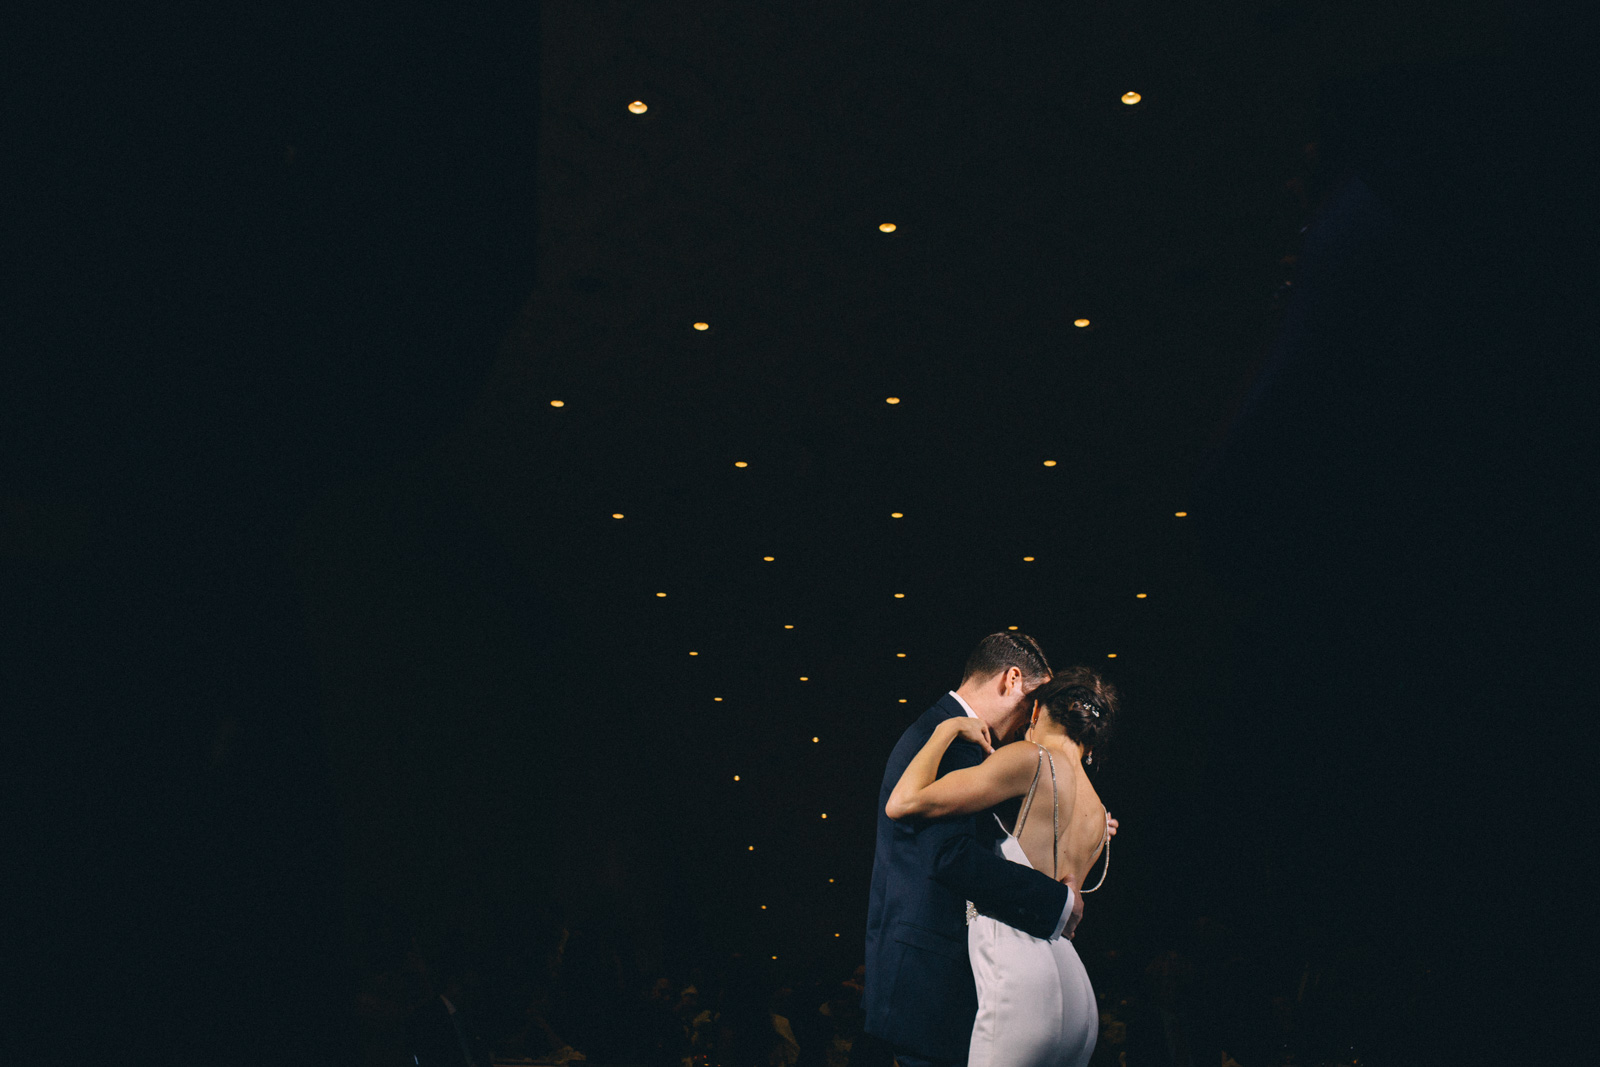 Malaparte-wedding-photography-Toronto-by-Sam-Wong-of-Artanis-Collective_72.jpg